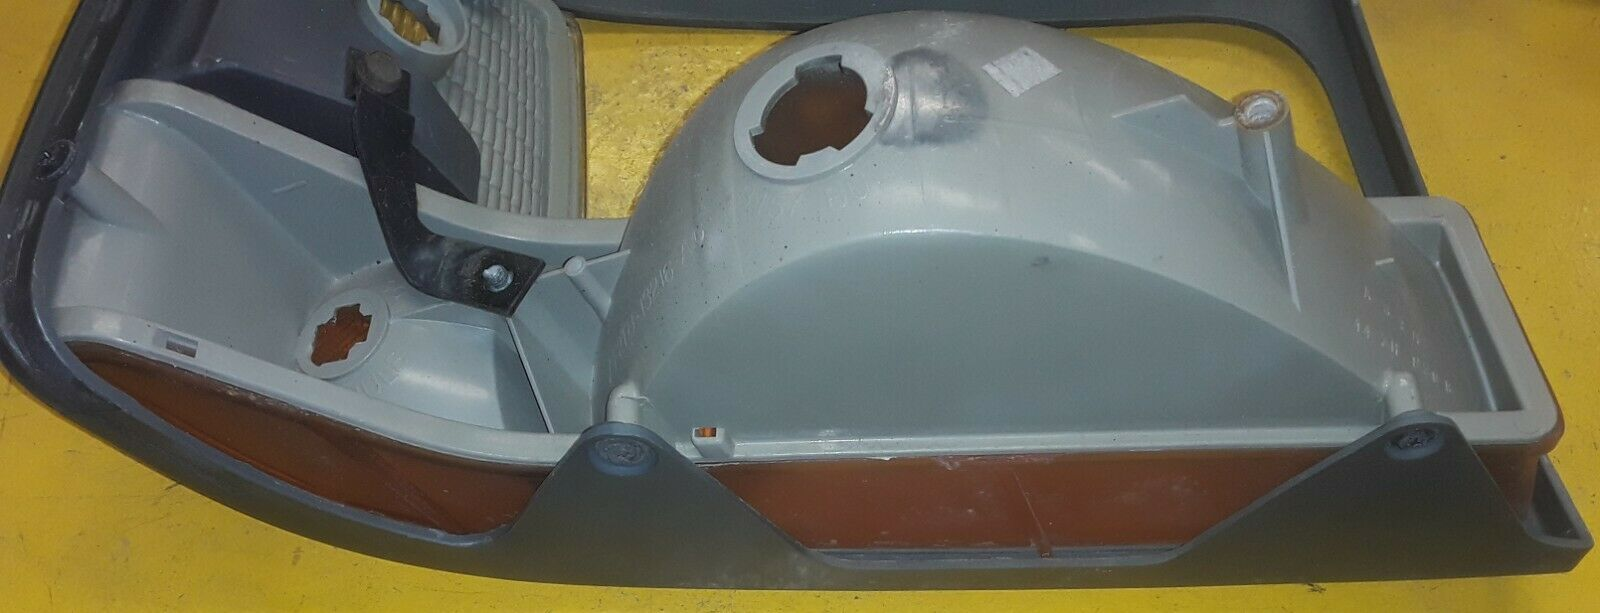 OEM FORD 92-96 F150 F250 F350 Bronco LH HEADLIGHT Assembly trim F2TB-13216-AG Does not apply